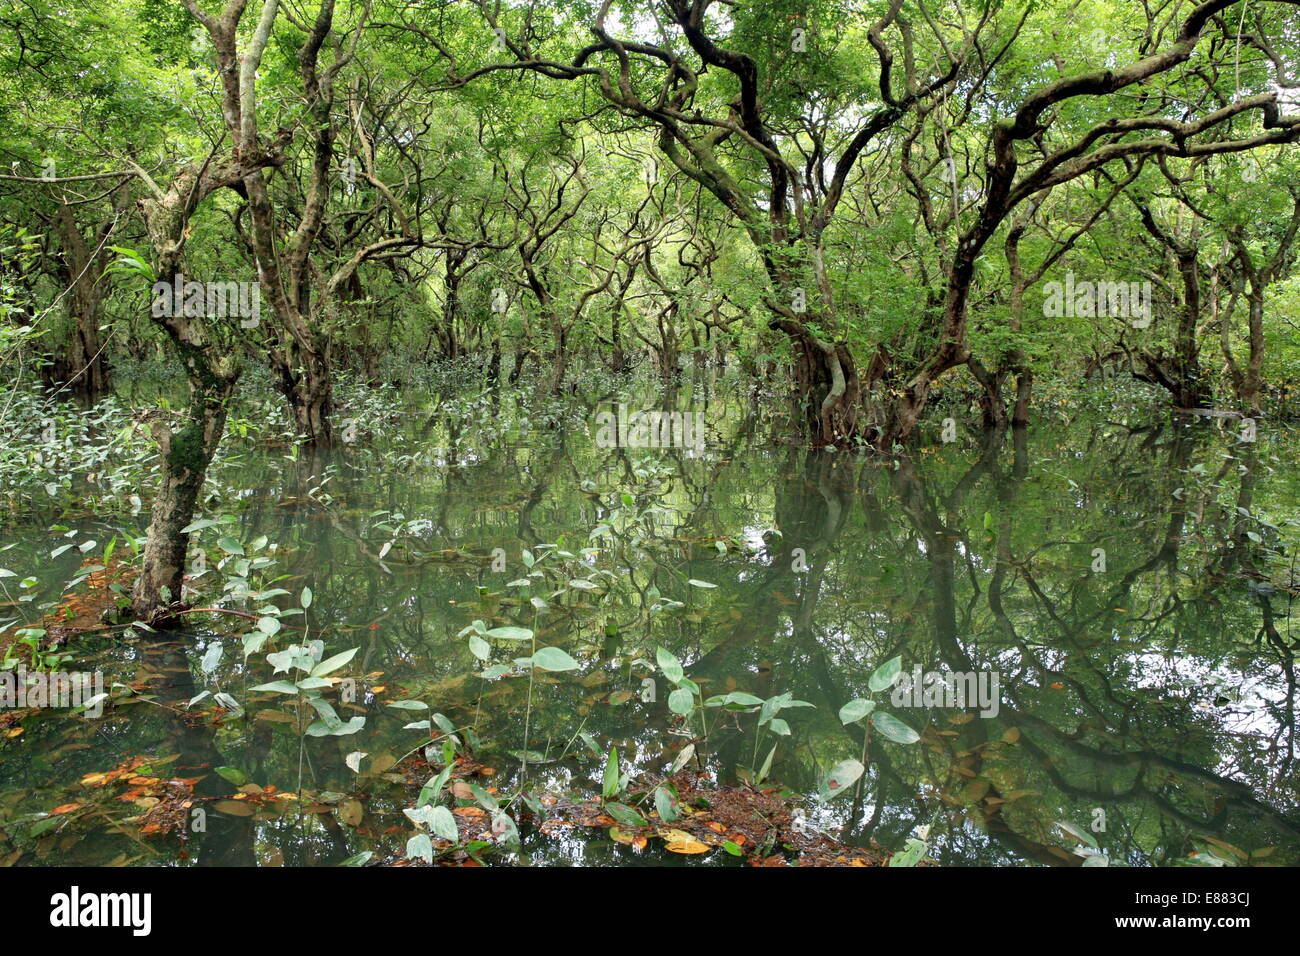 Ratargul Natural Swamp Forest is a freshwater swamp forest located ...